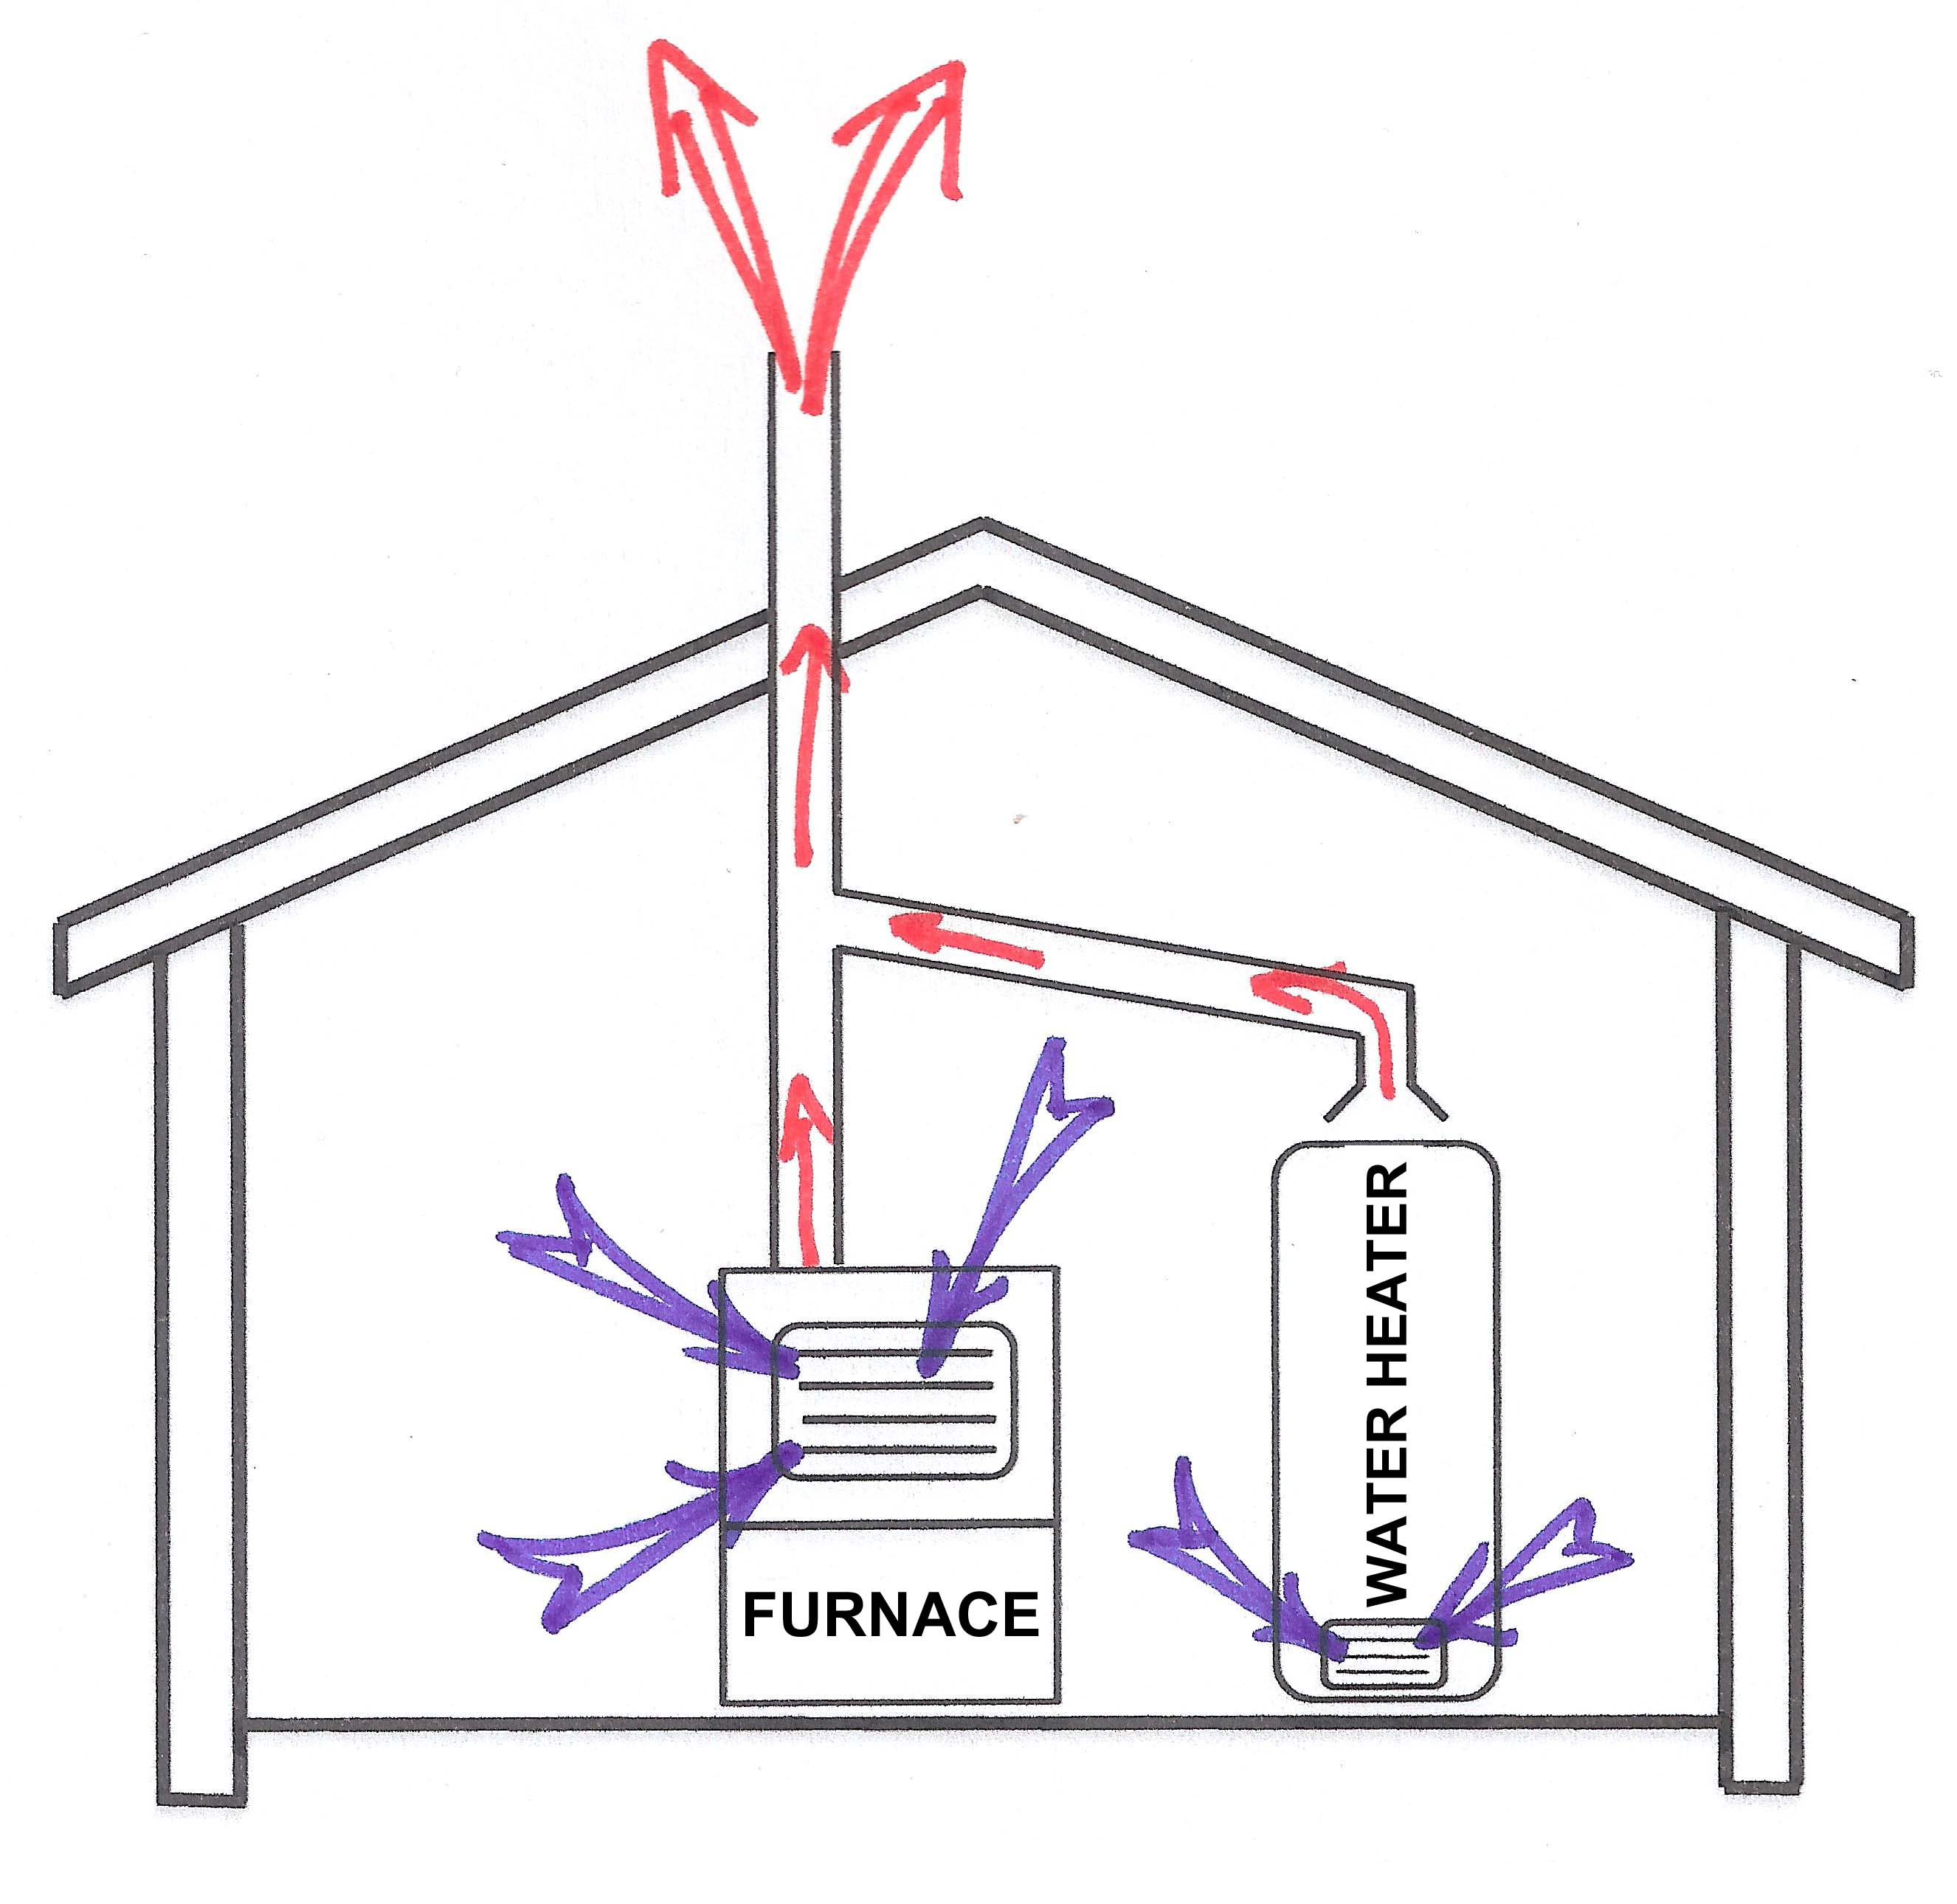 outdoor air furnace diagram